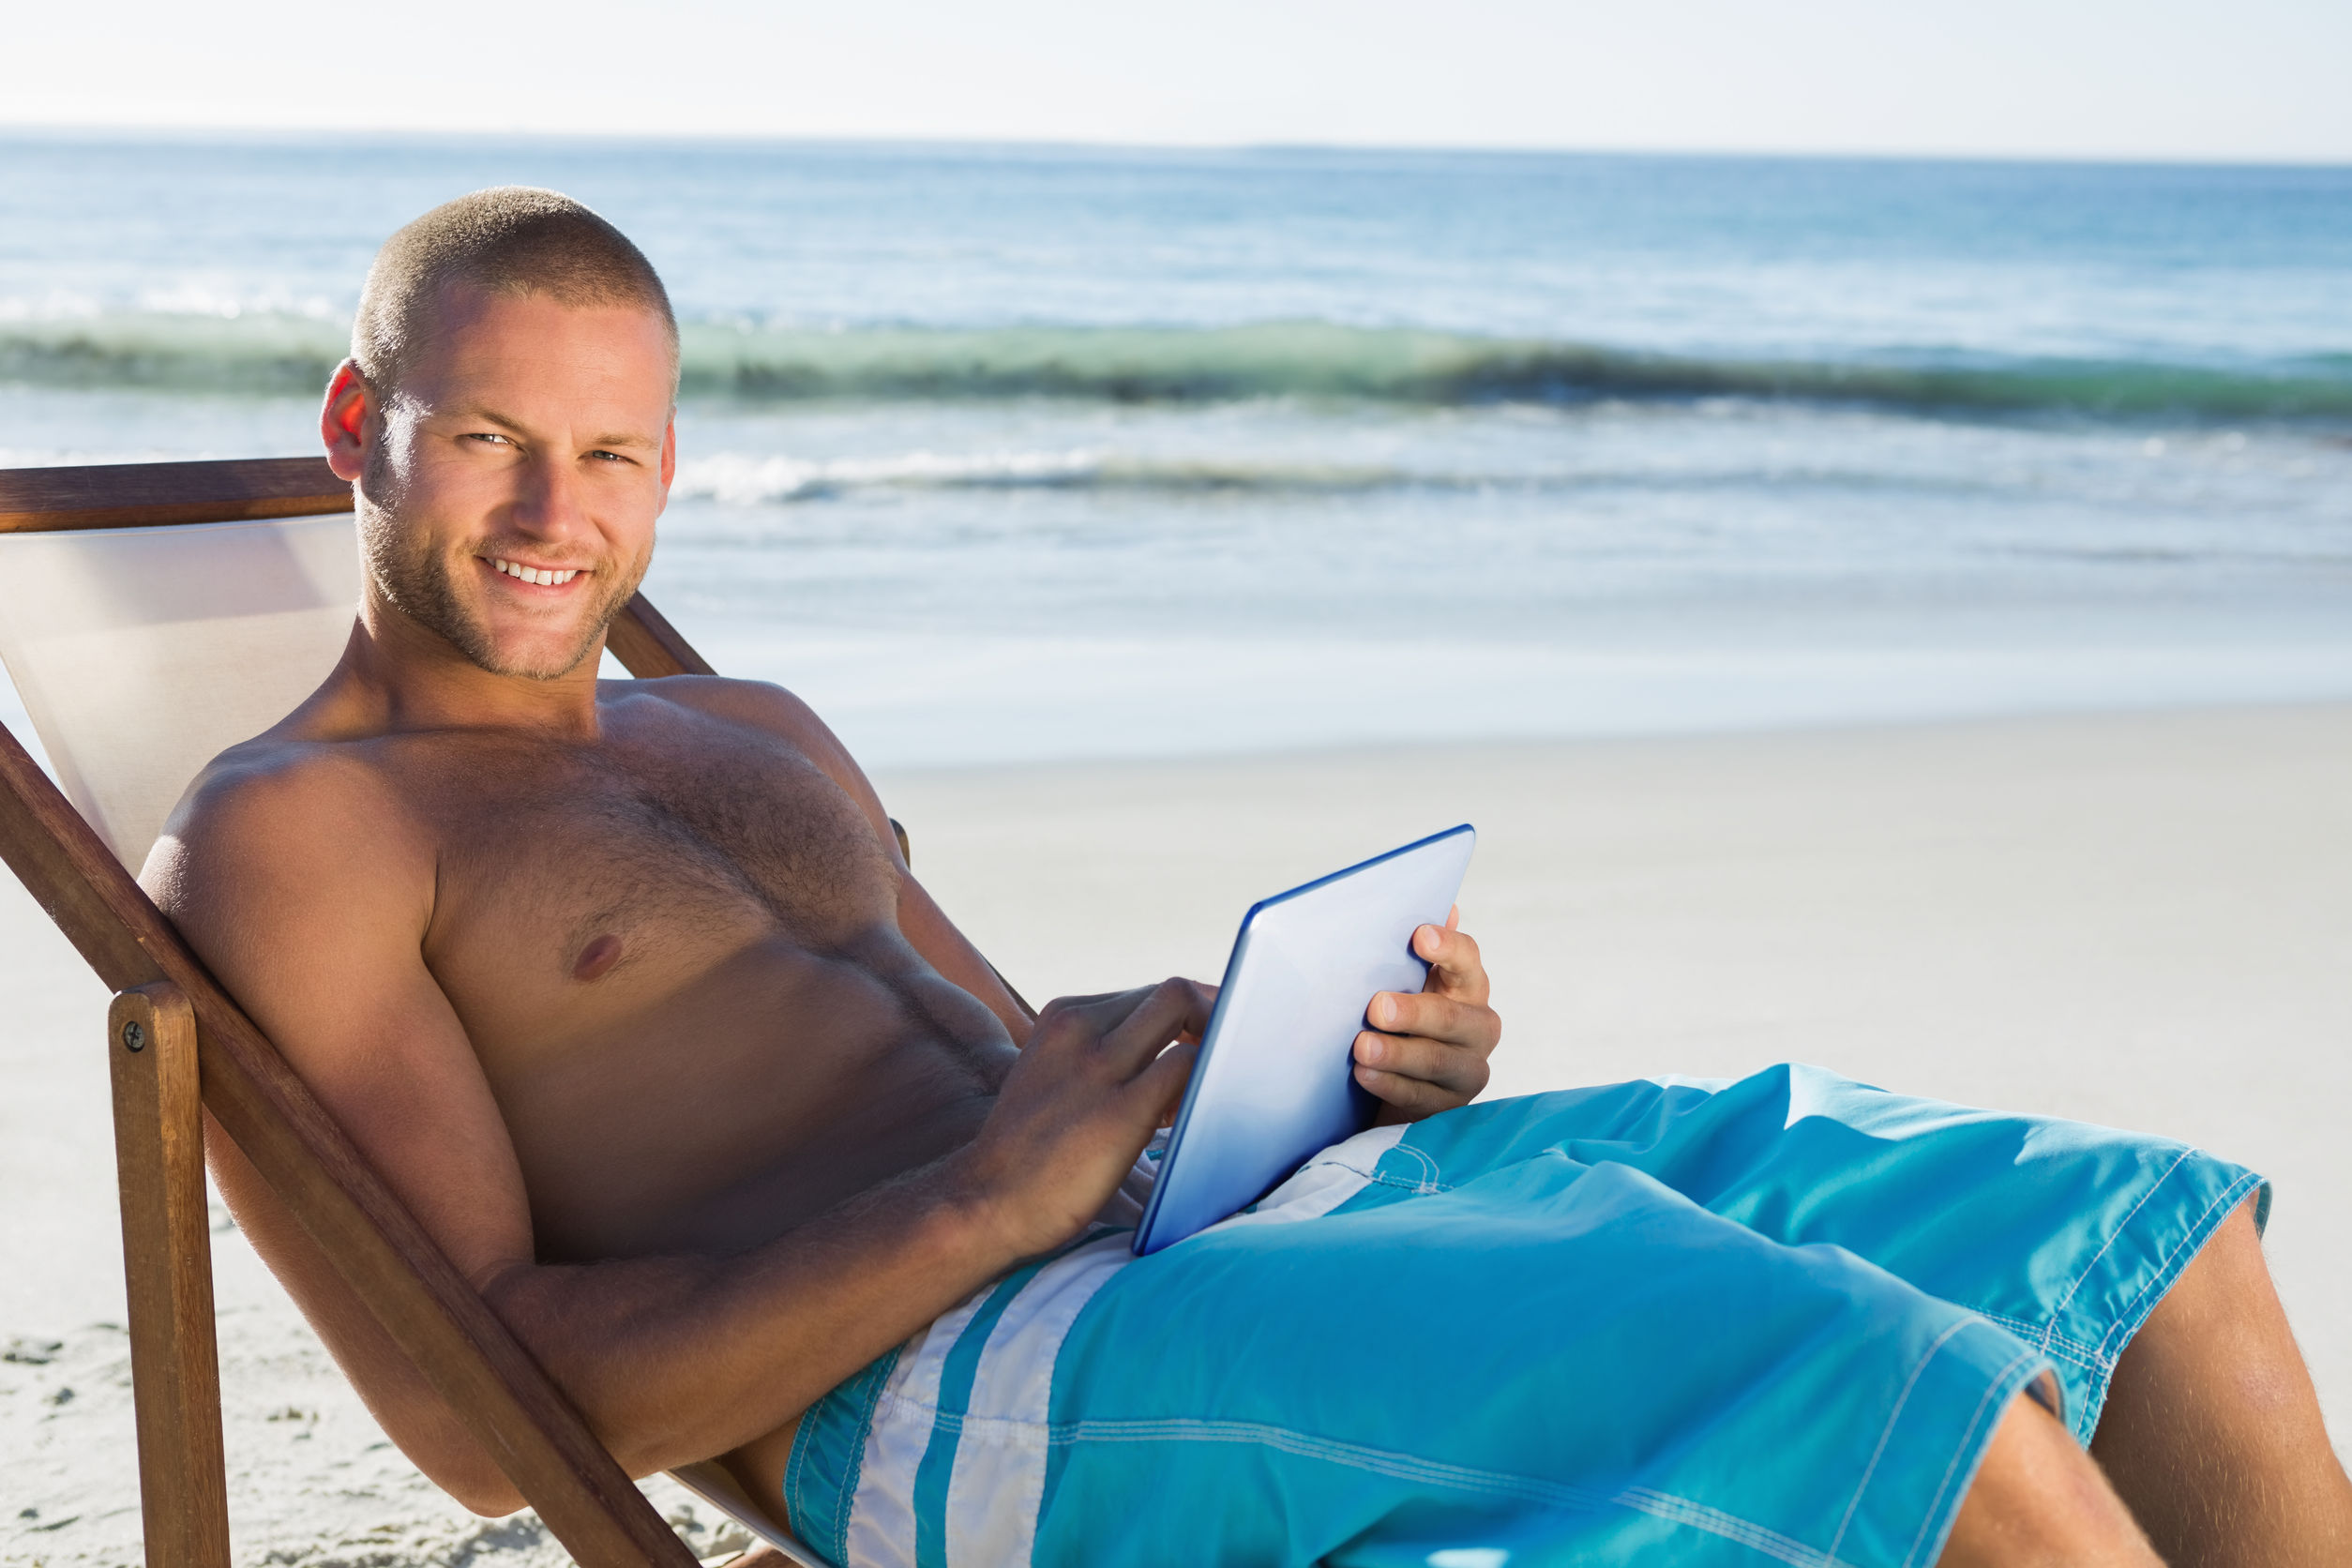 sexy guy shirtless at beach playing casino games